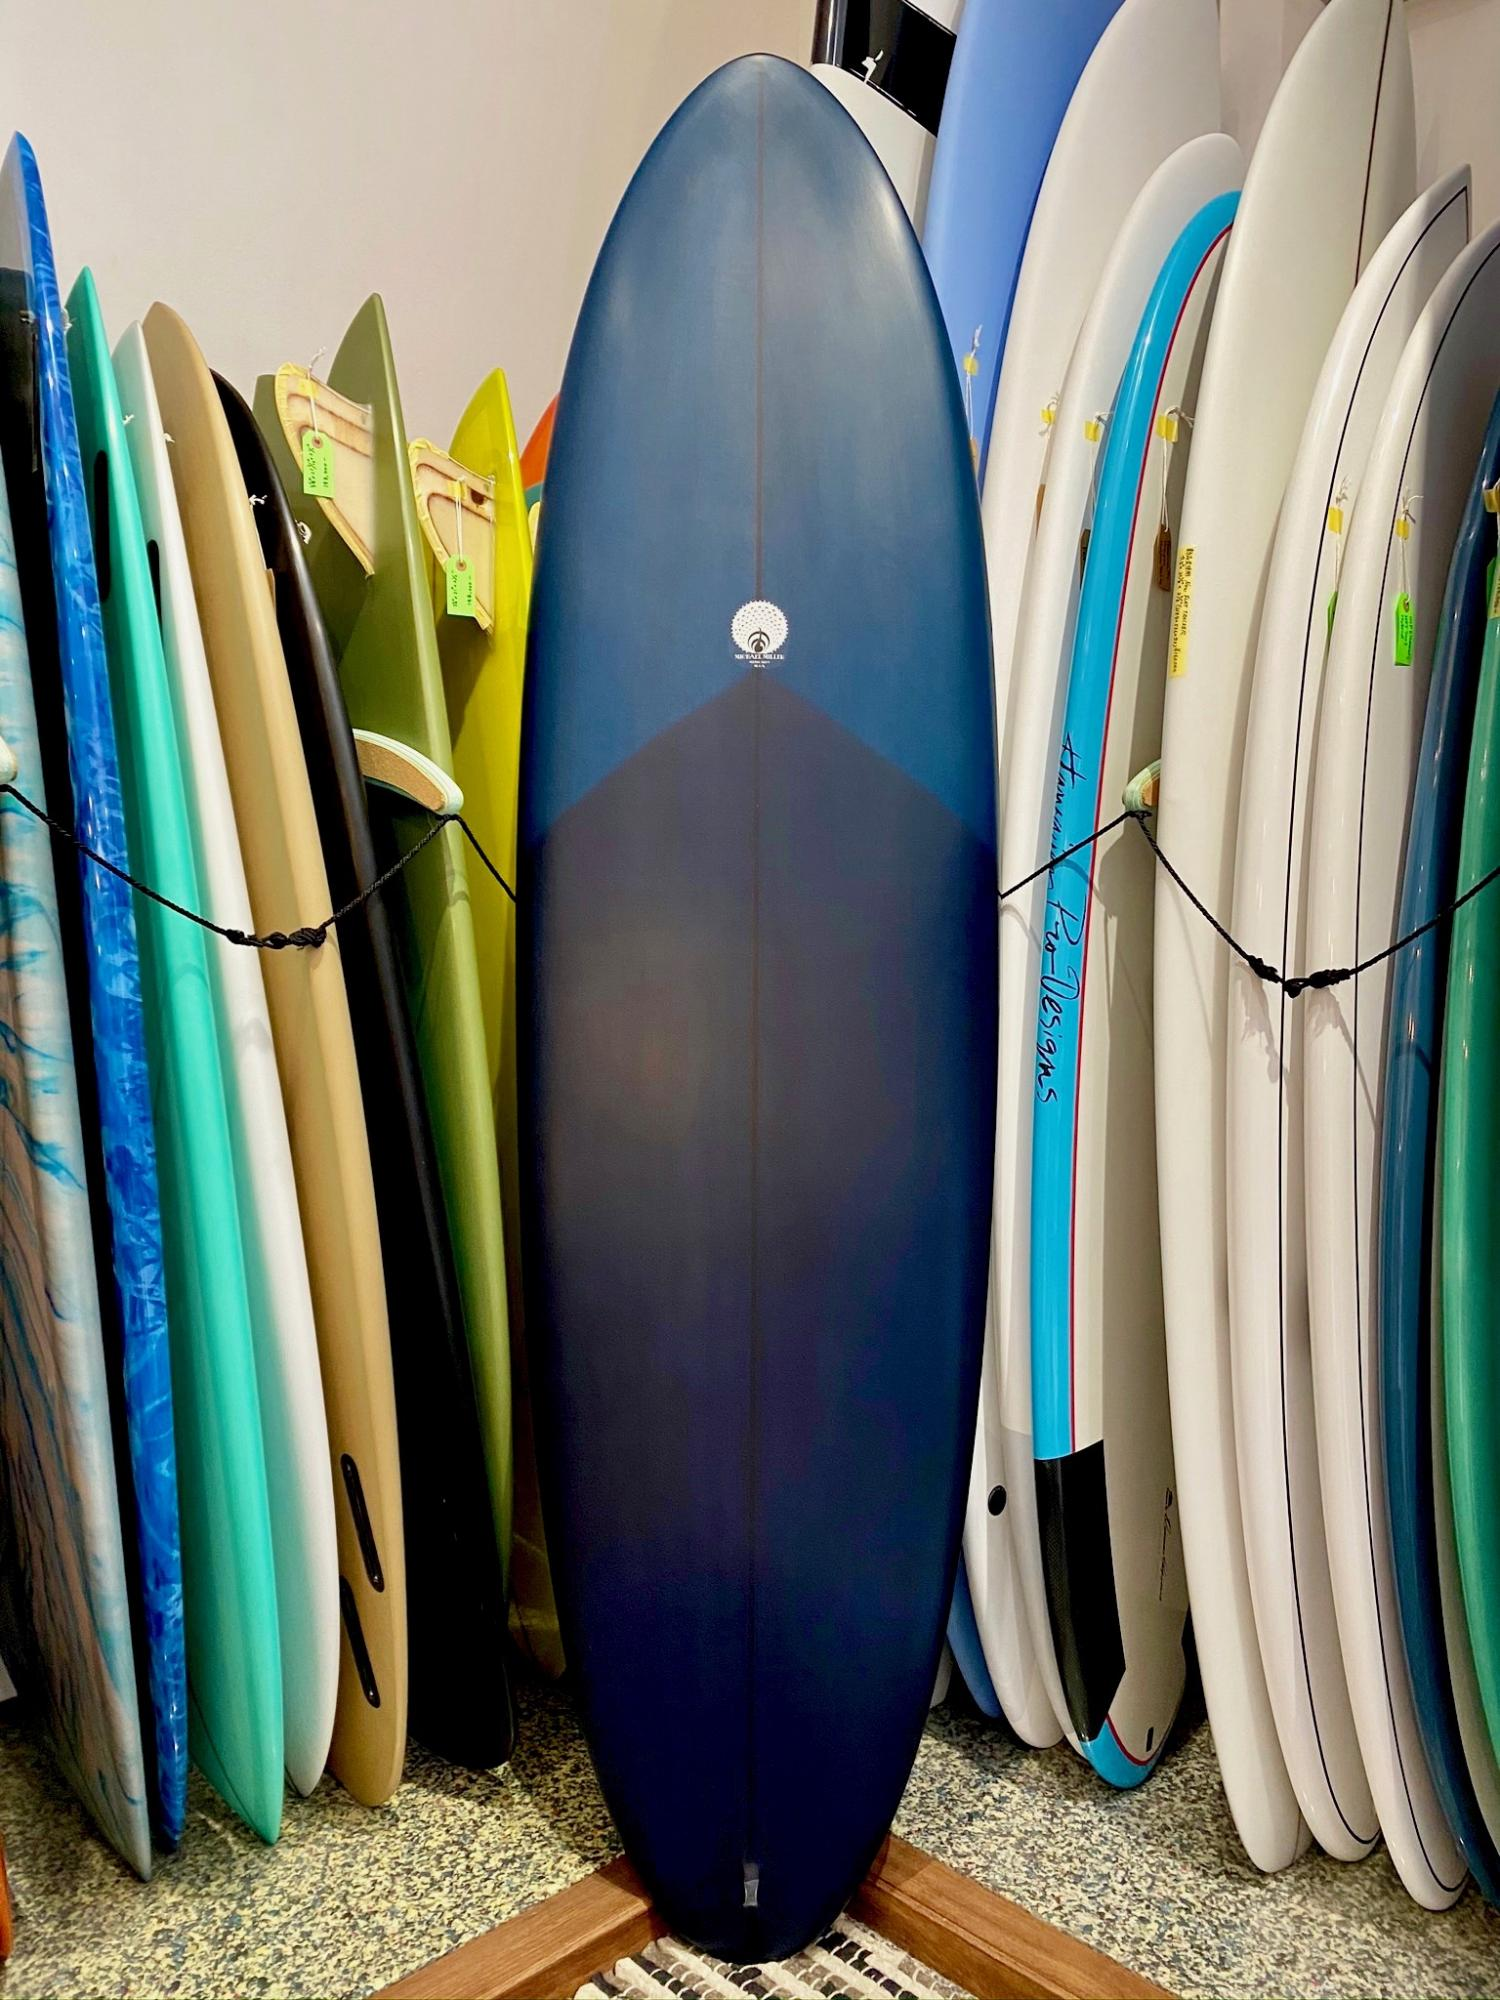 6.10 Frye Egg Michael Miller Surfboards